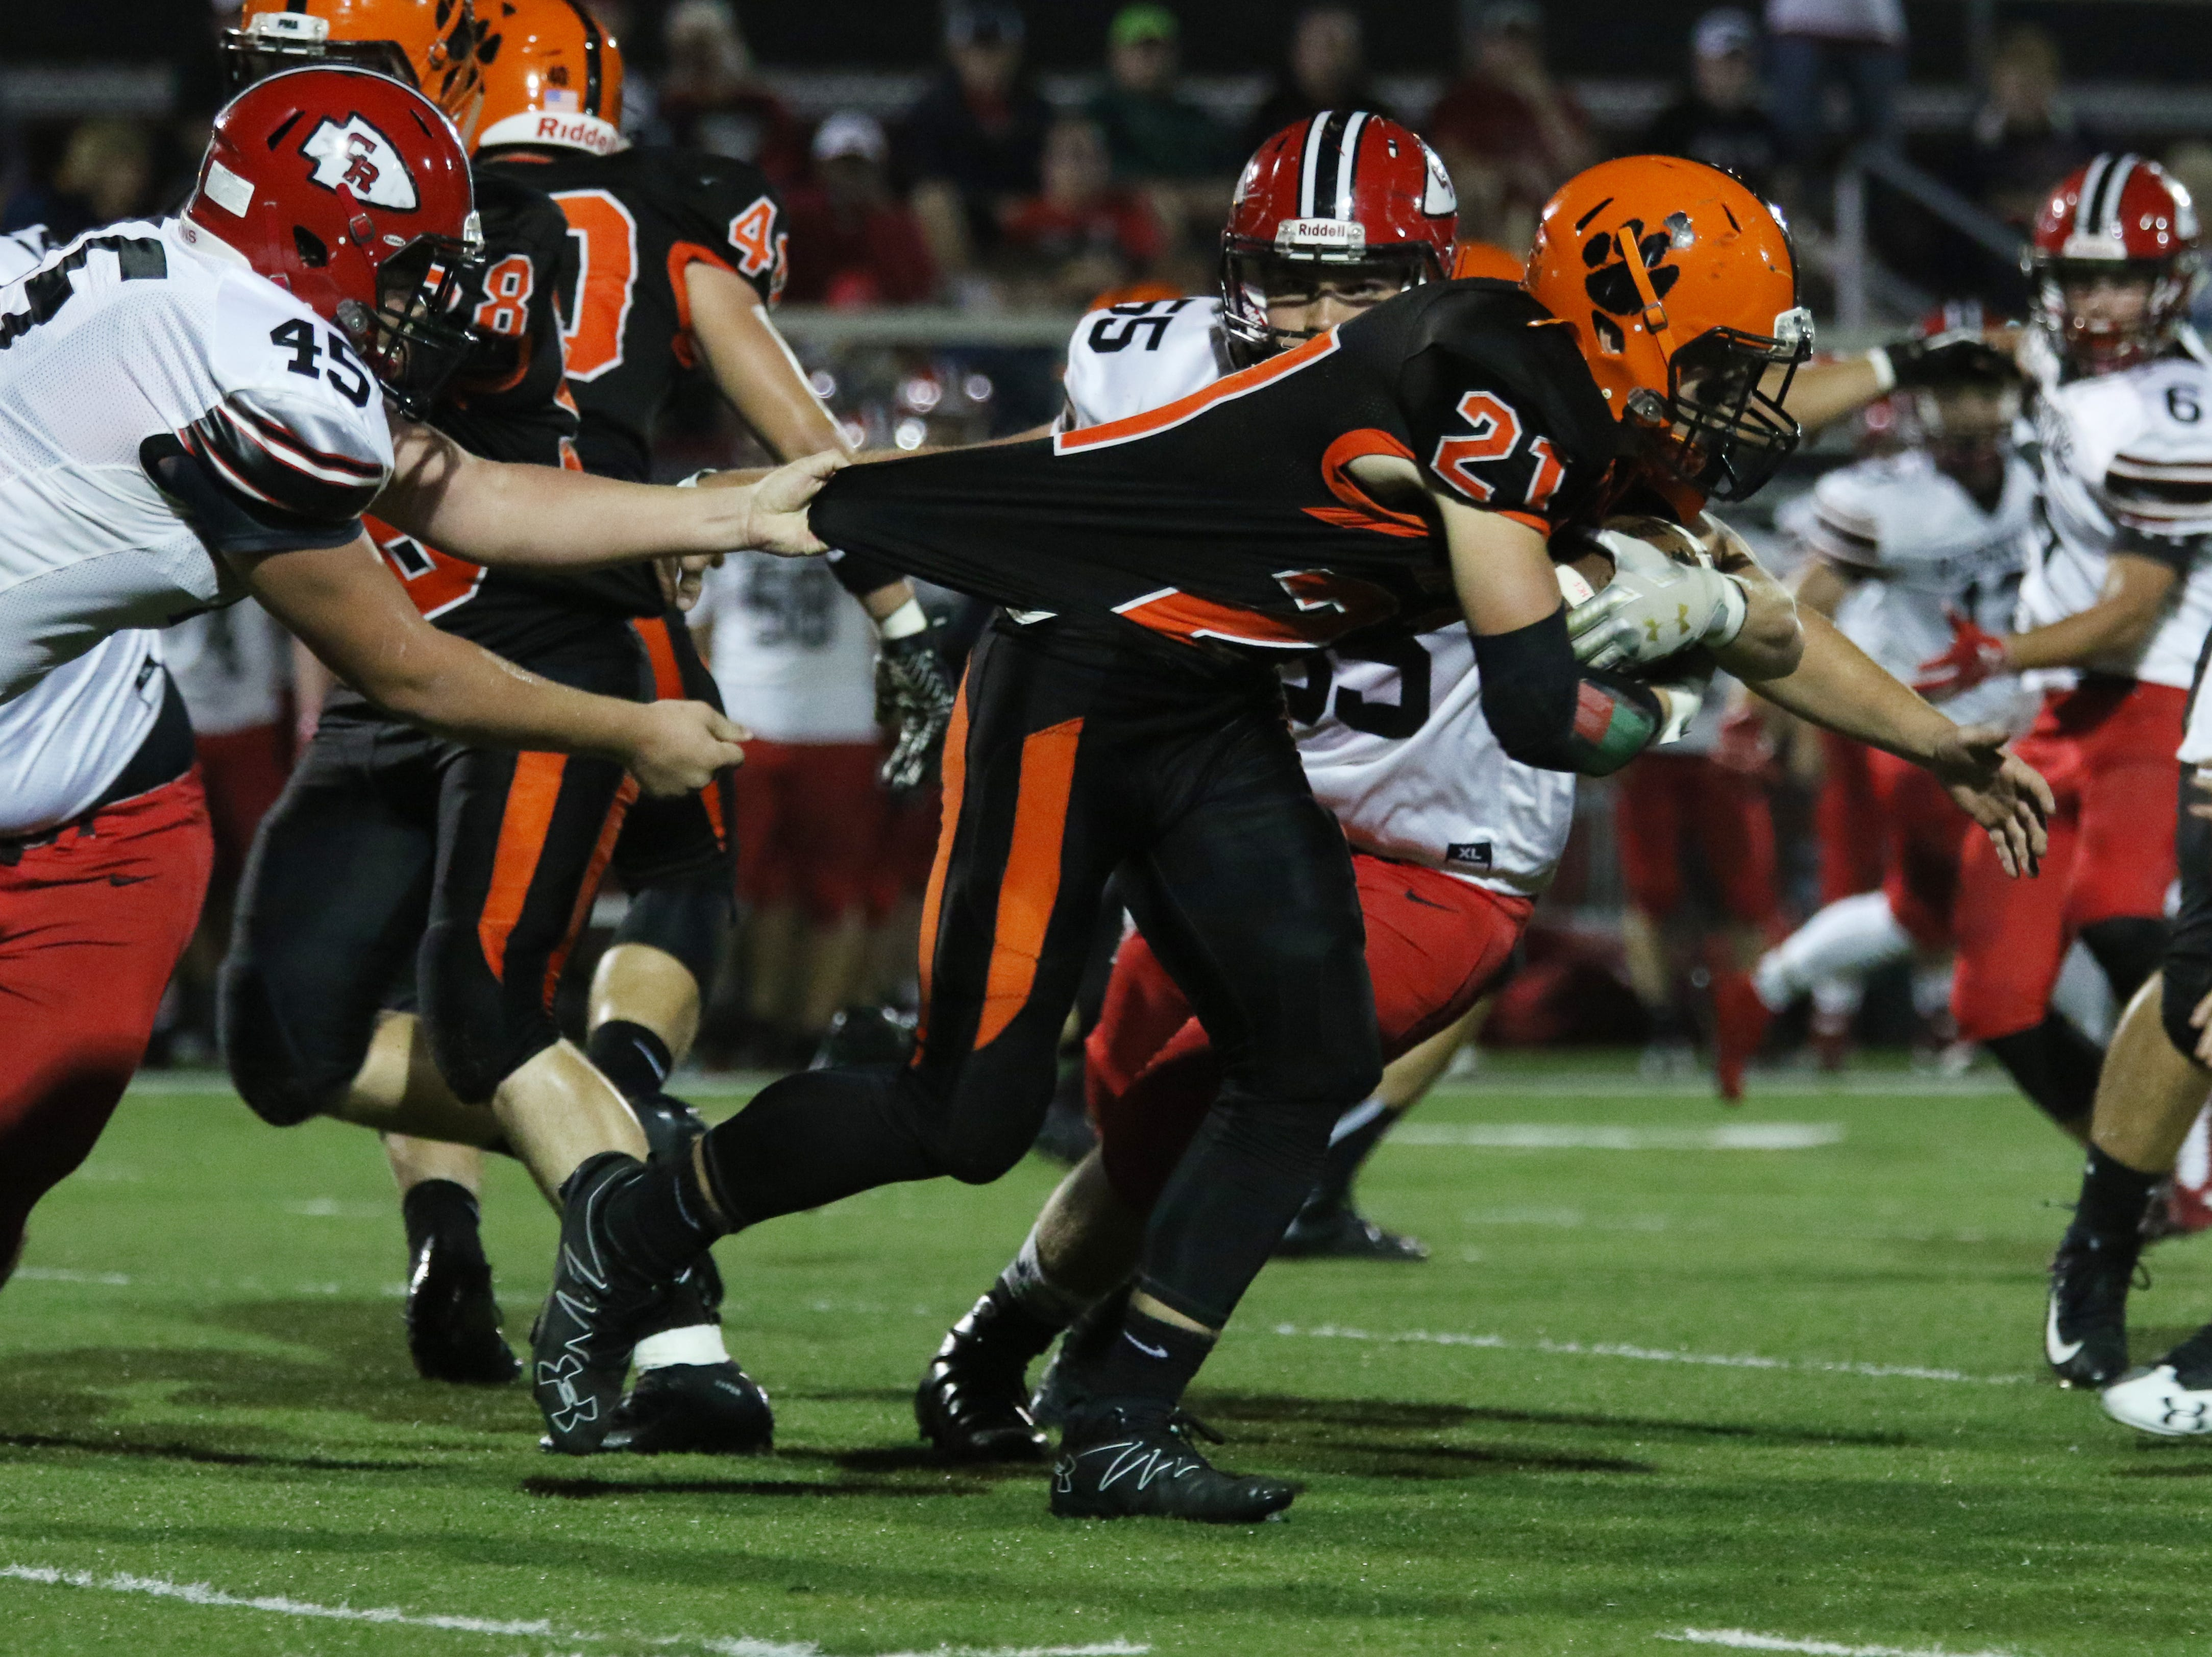 New Lexington's Christian Vance fights for yardage against Coshocton.